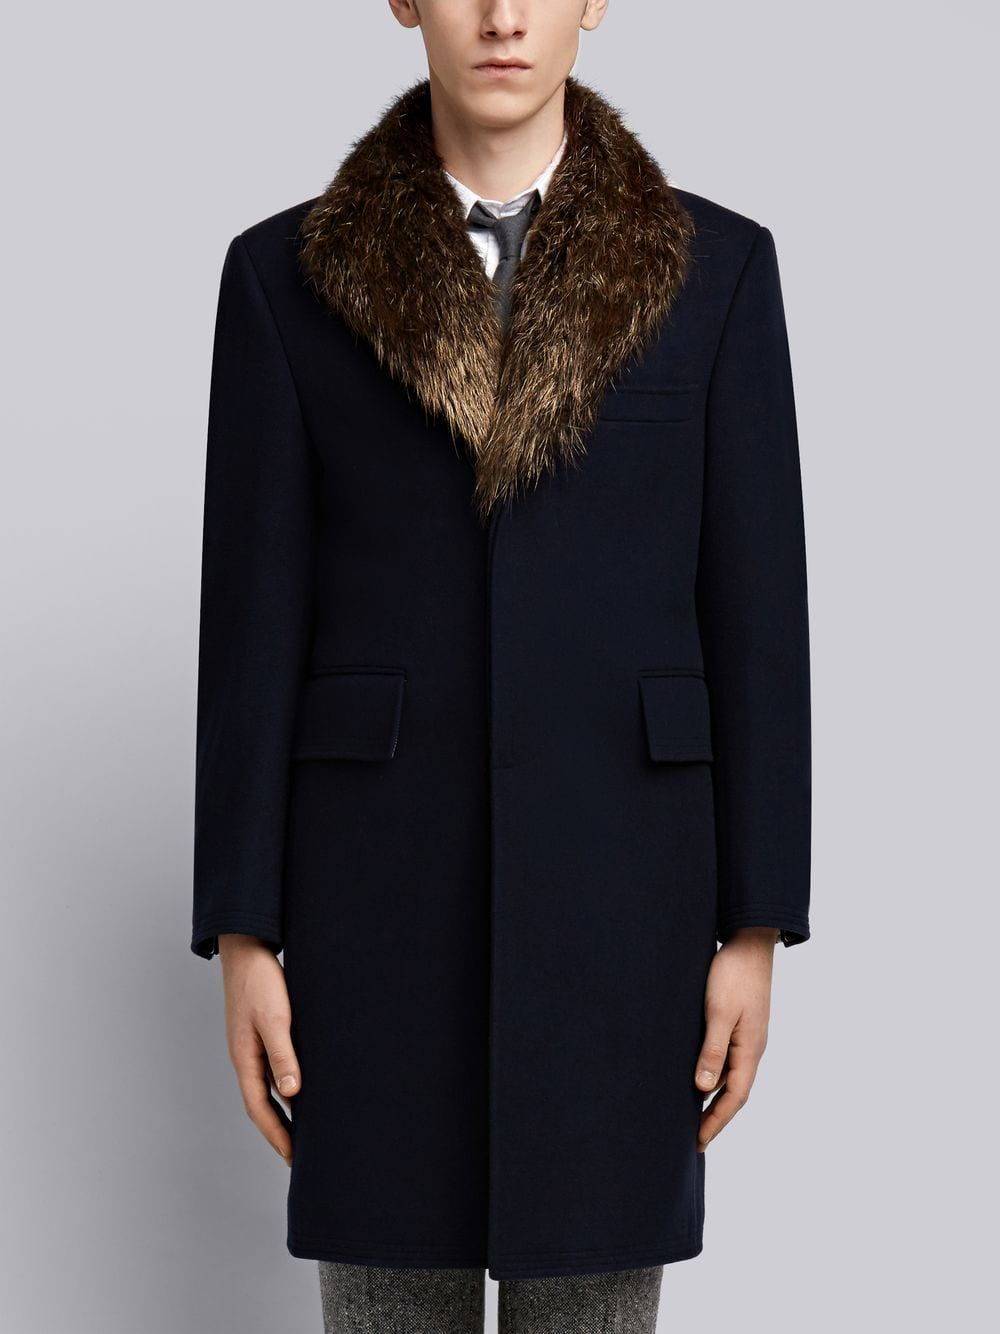 843bf545a009 THOM BROWNE THOM BROWNE DETACHABLE GOLD BEAVER COLLAR MELTON WOOL  CHESTERFIELD OVERCOAT.  thombrowne  cloth